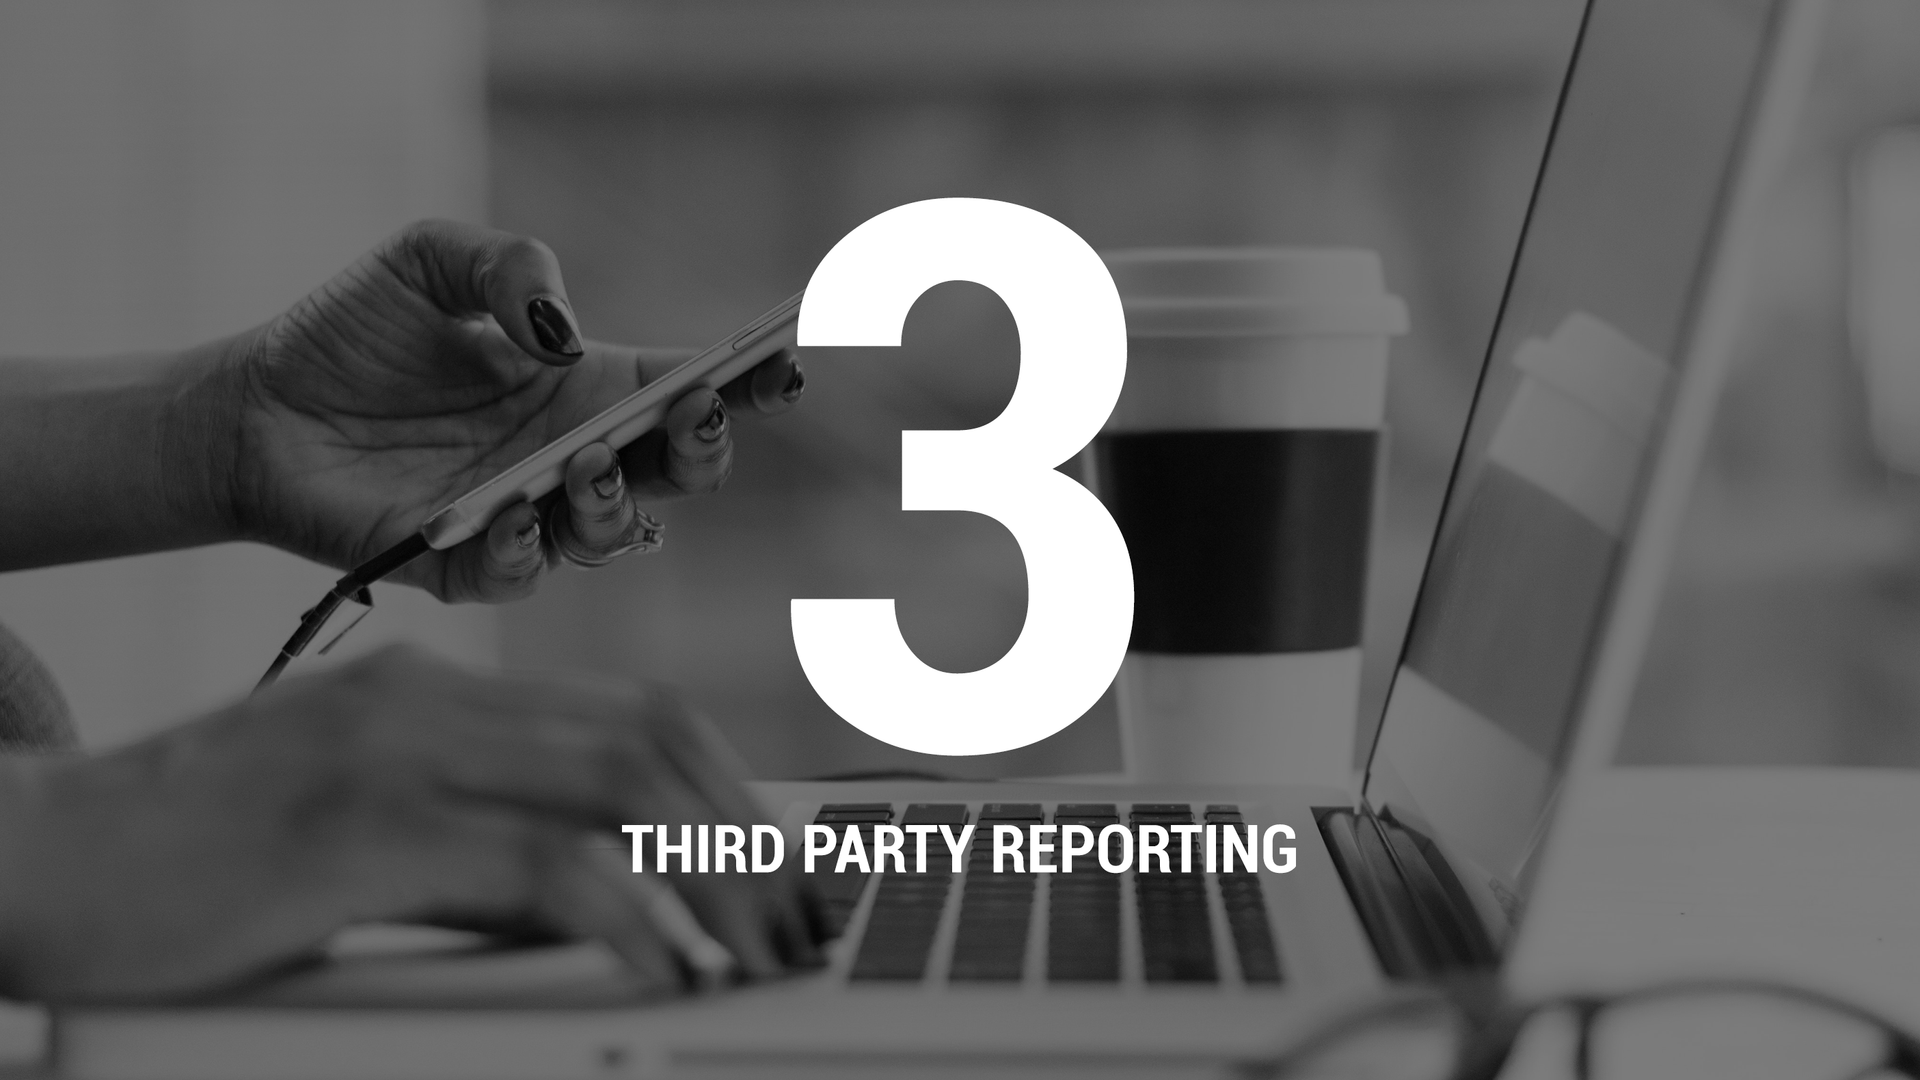 THIRD PARTY REPORTING